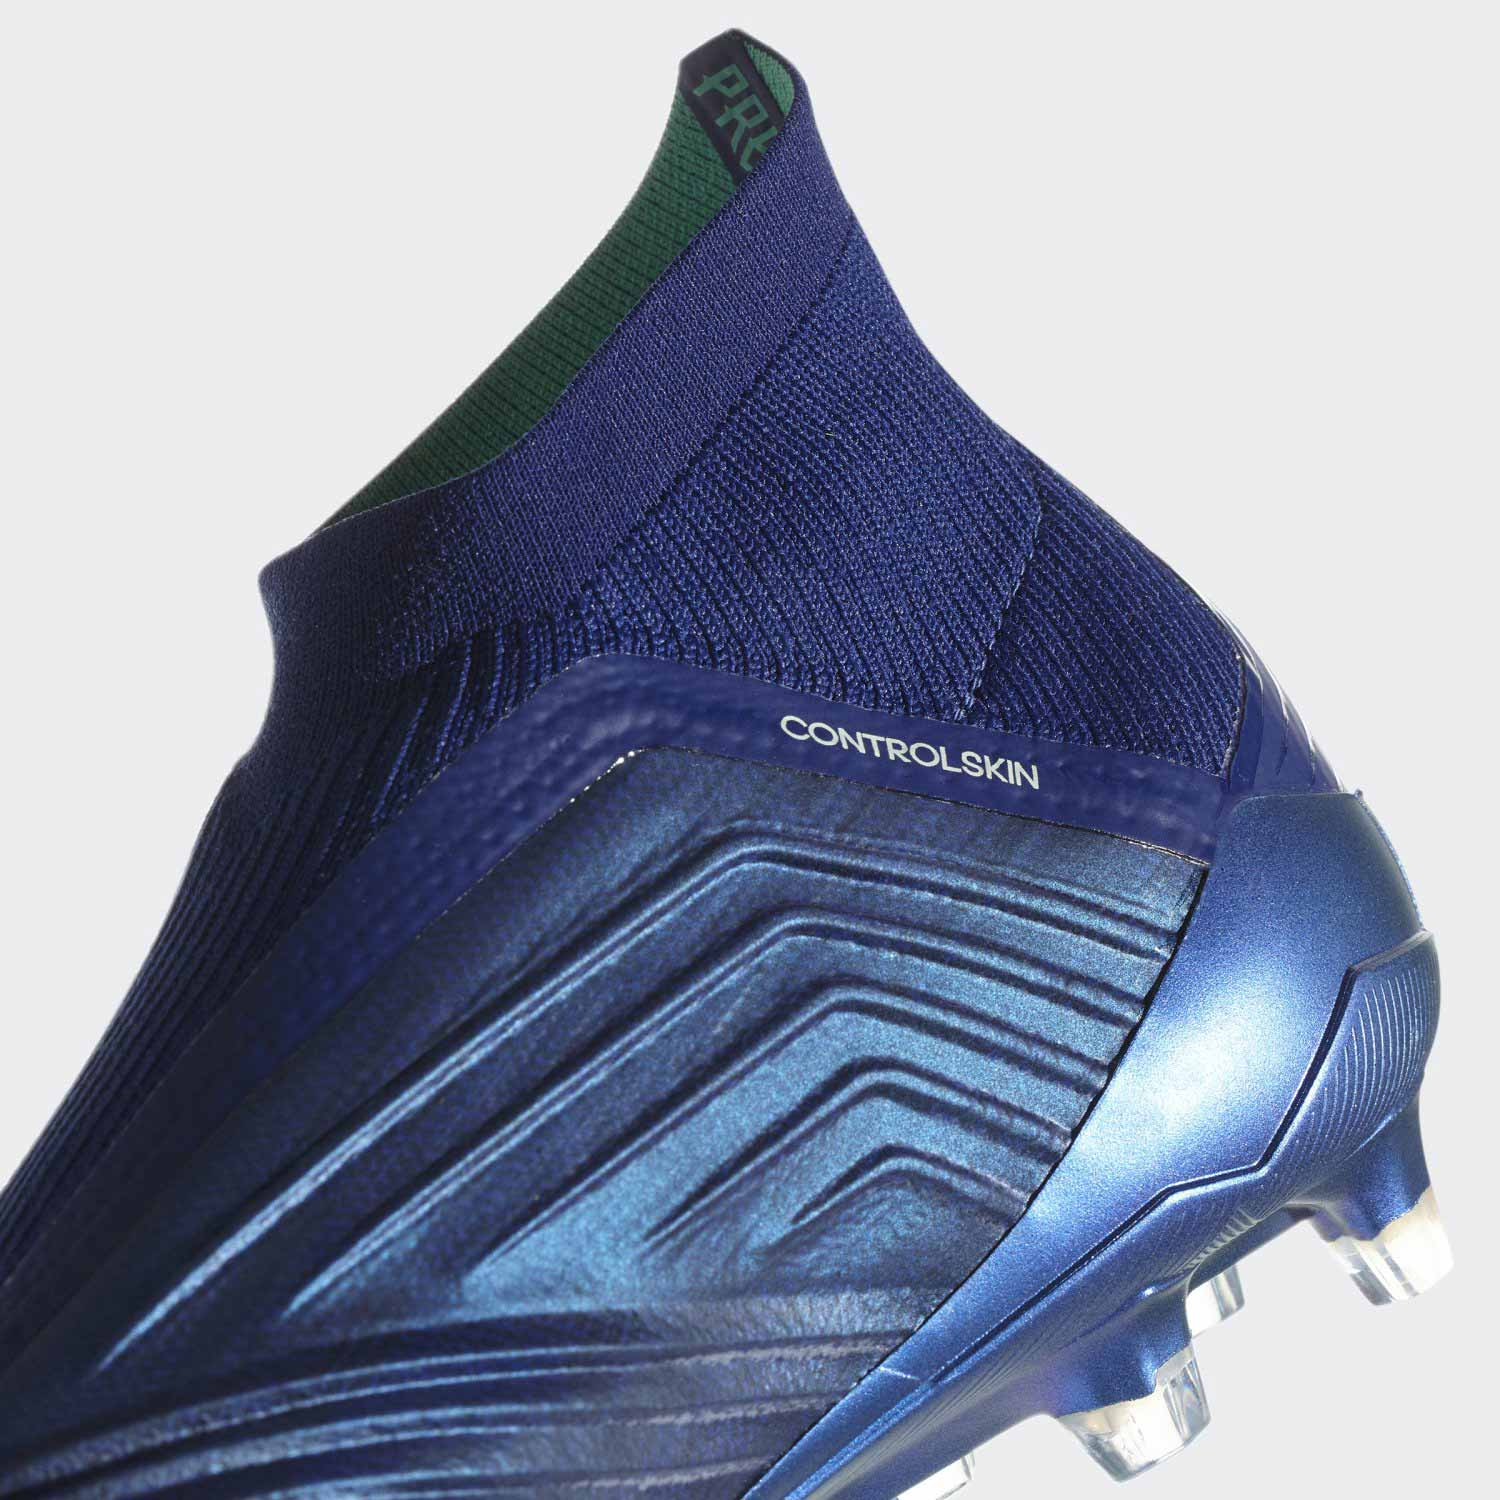 the latest c2965 503be The first official pictures of the laceless Adidas Predator 18+ boots from  the Deadly Strike pack have been leaked. They reveal a design that features  a lot ...